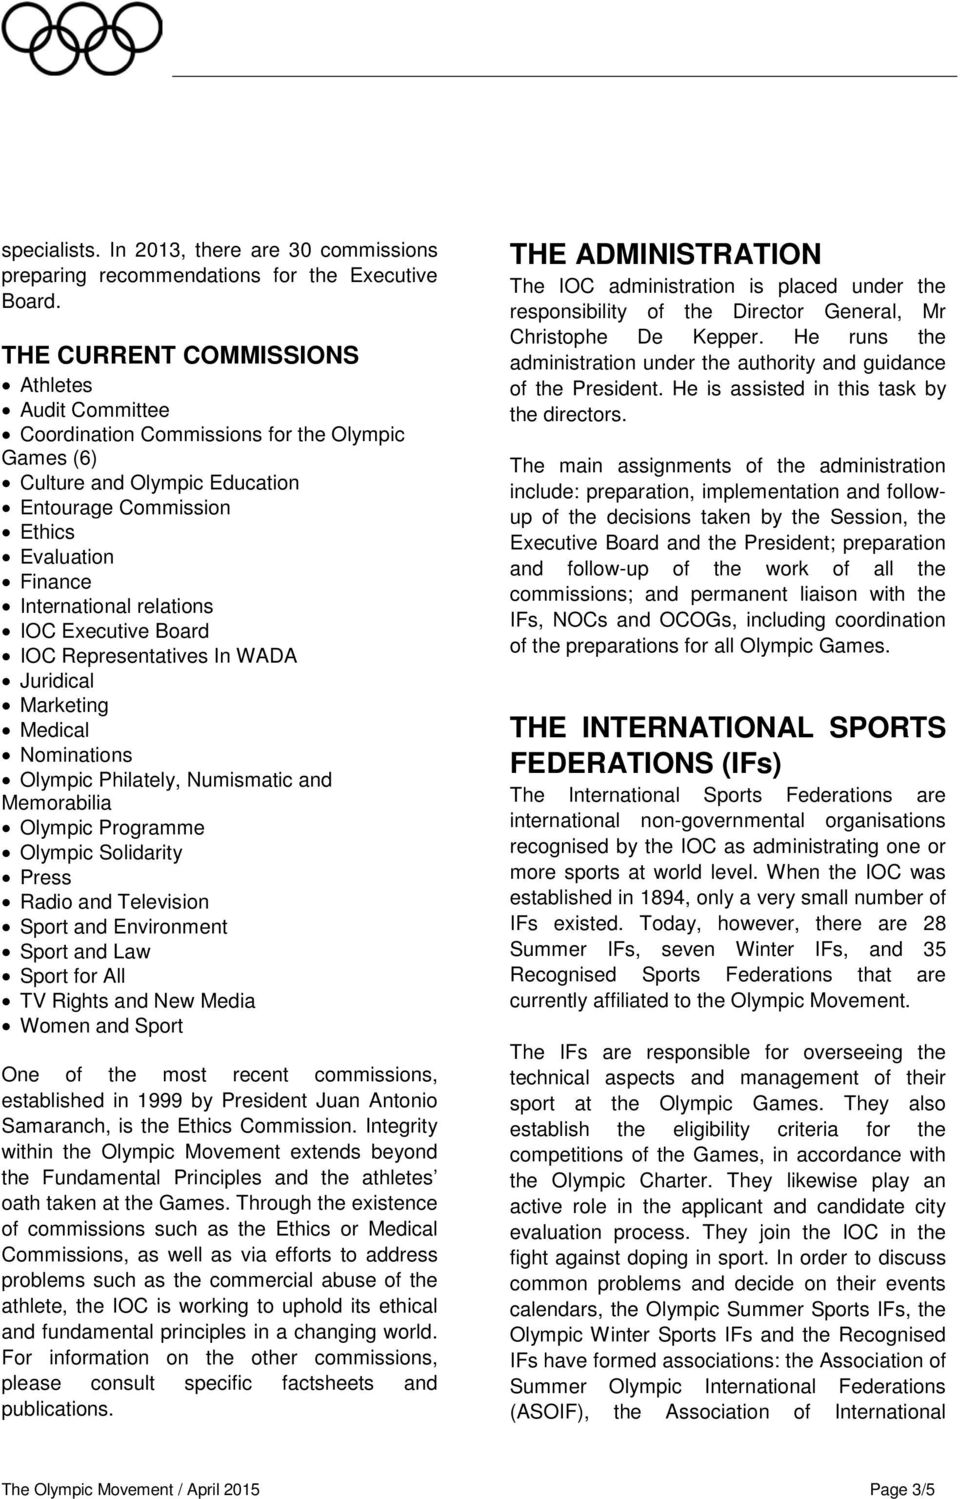 relations IOC Executive Board IOC Representatives In WADA Juridical Marketing Medical Nominations Olympic Philately, Numismatic and Memorabilia Olympic Programme Olympic Solidarity Press Radio and